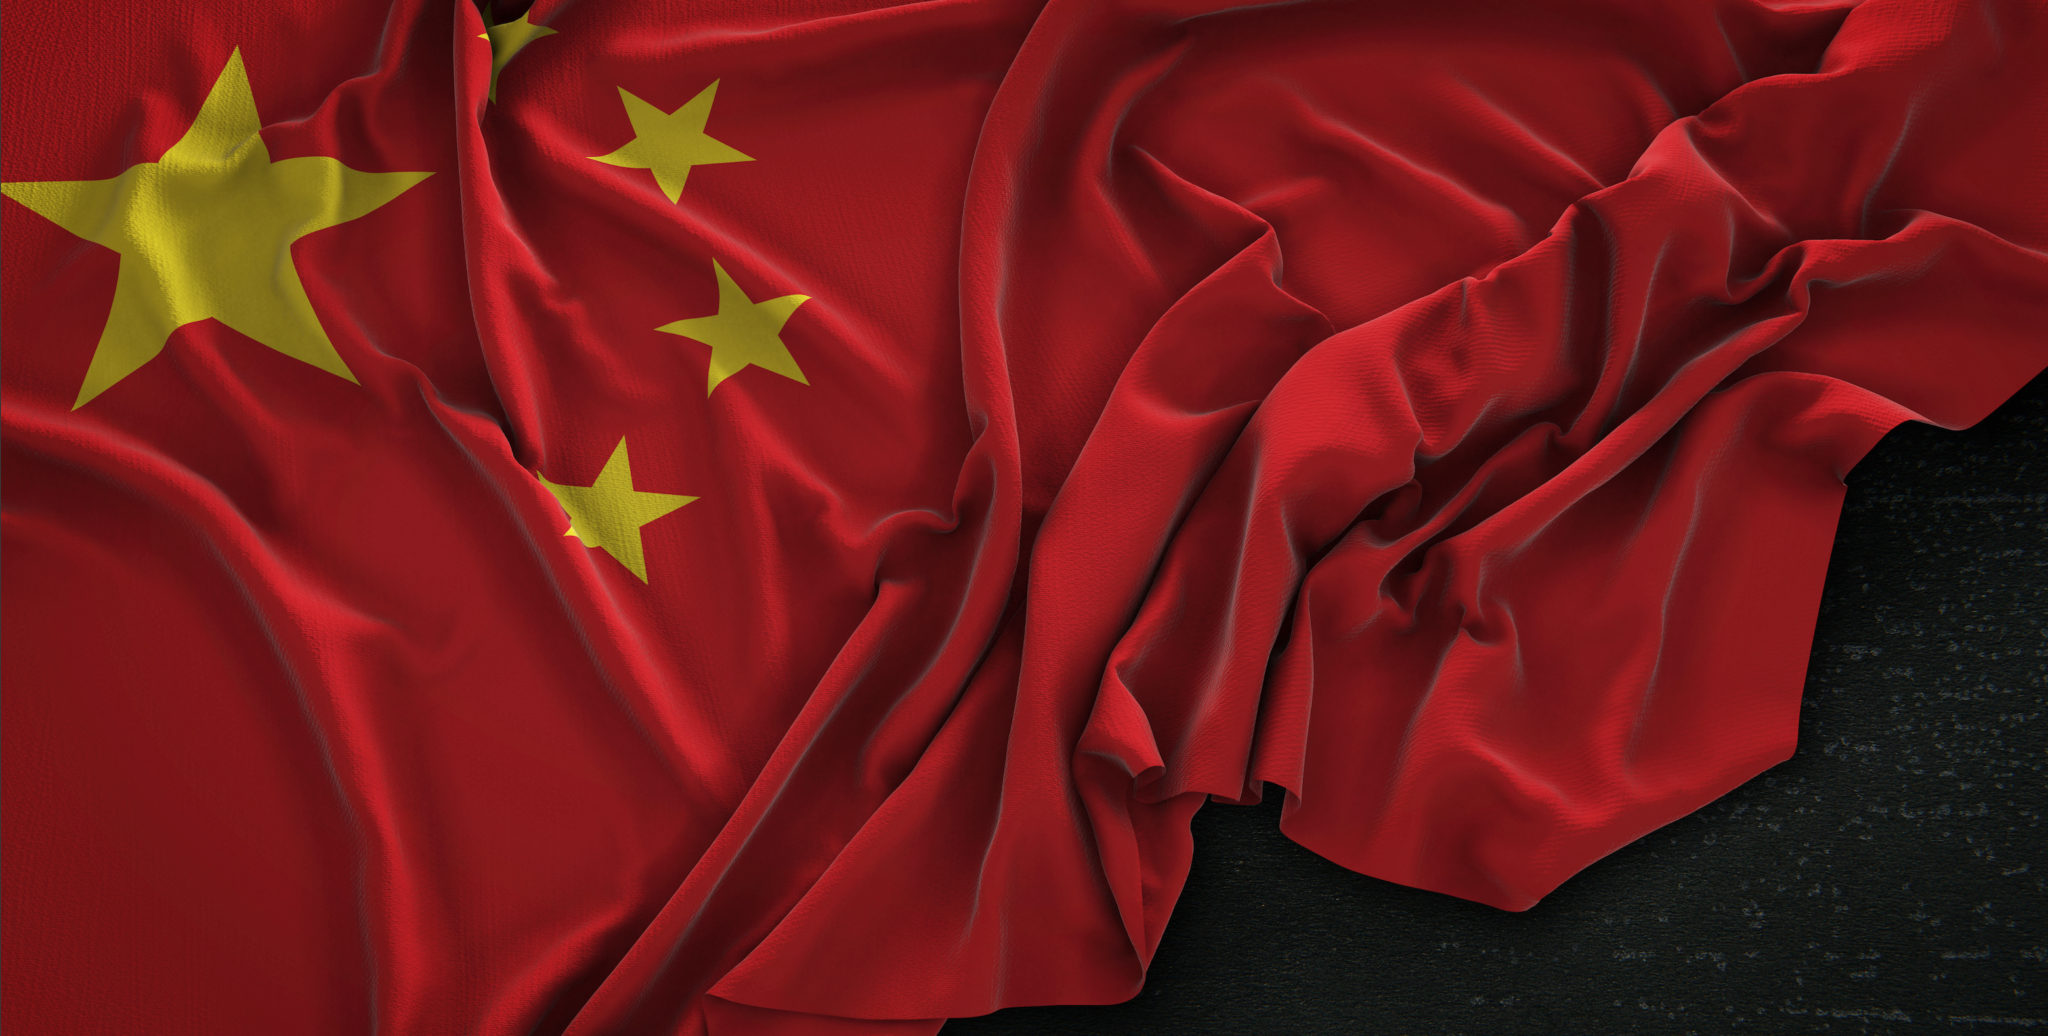 Review-Chinese-role-in-UK-universities-Jo-Johnson-report-urge